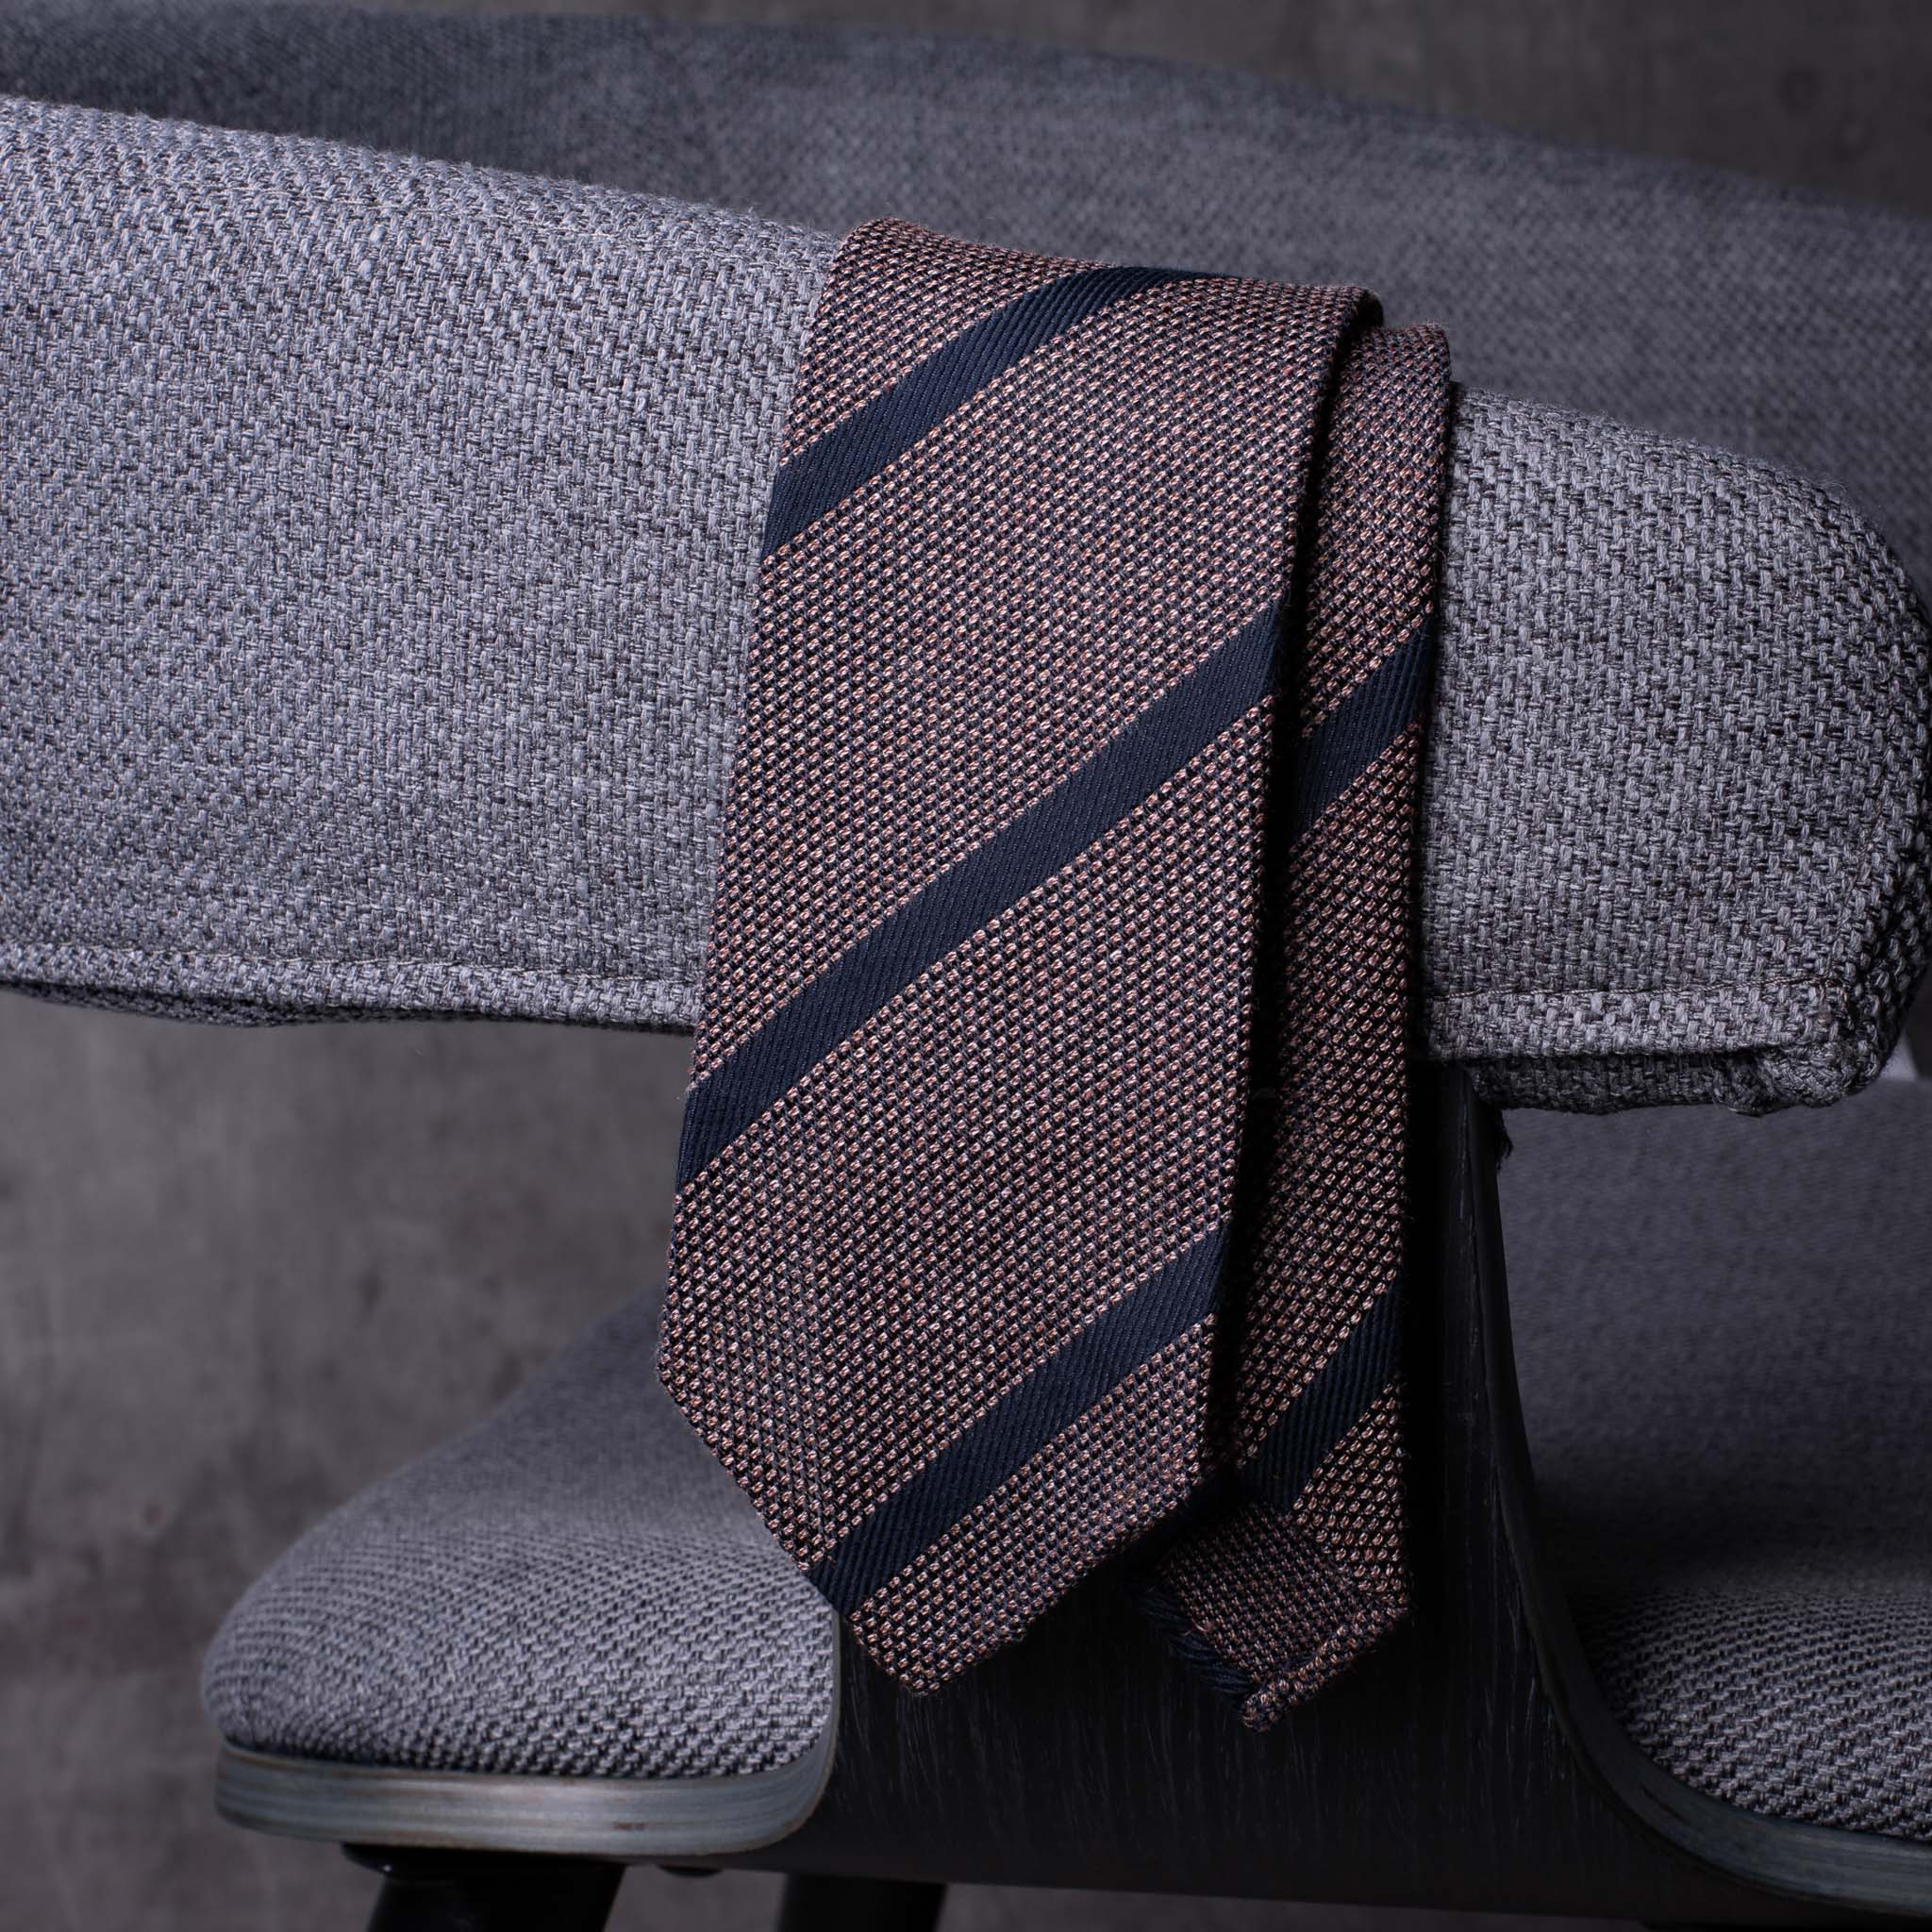 WOOL-0481-Tie-Initials-Corbata-Iniciales-The-Seelk-3